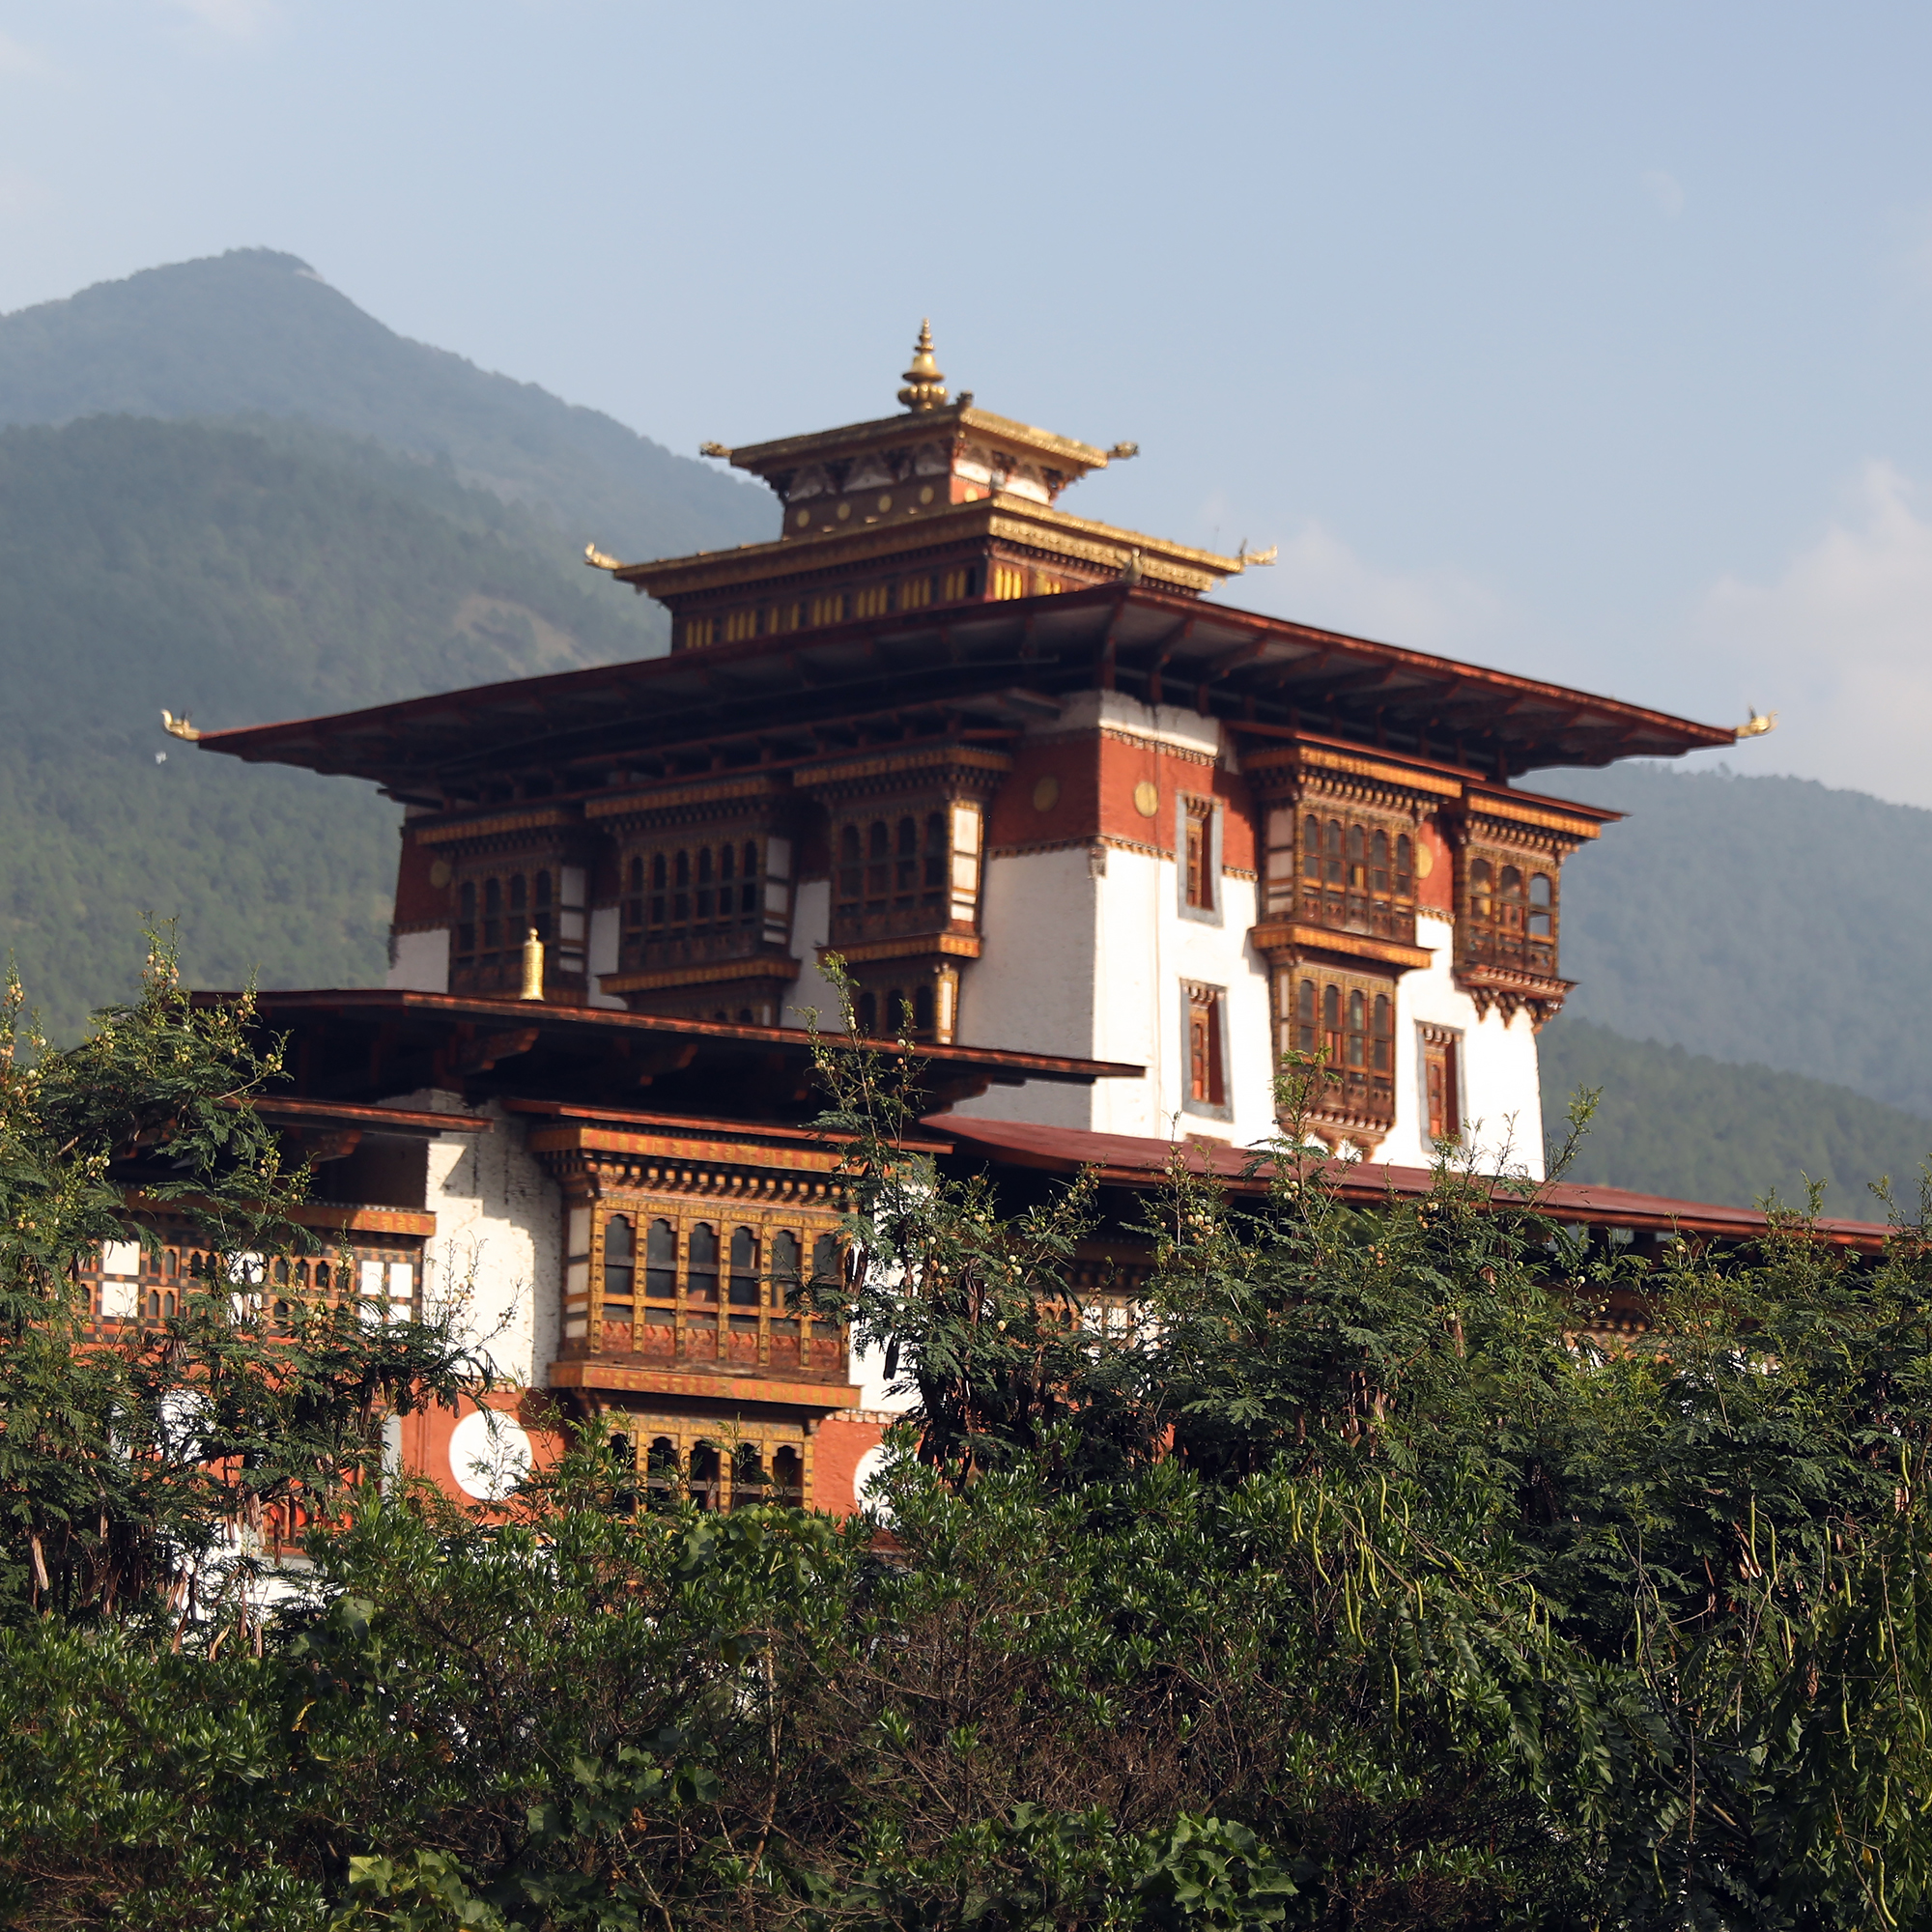 bucket-list-prints-bhutan-fort-g-thumb.jpg